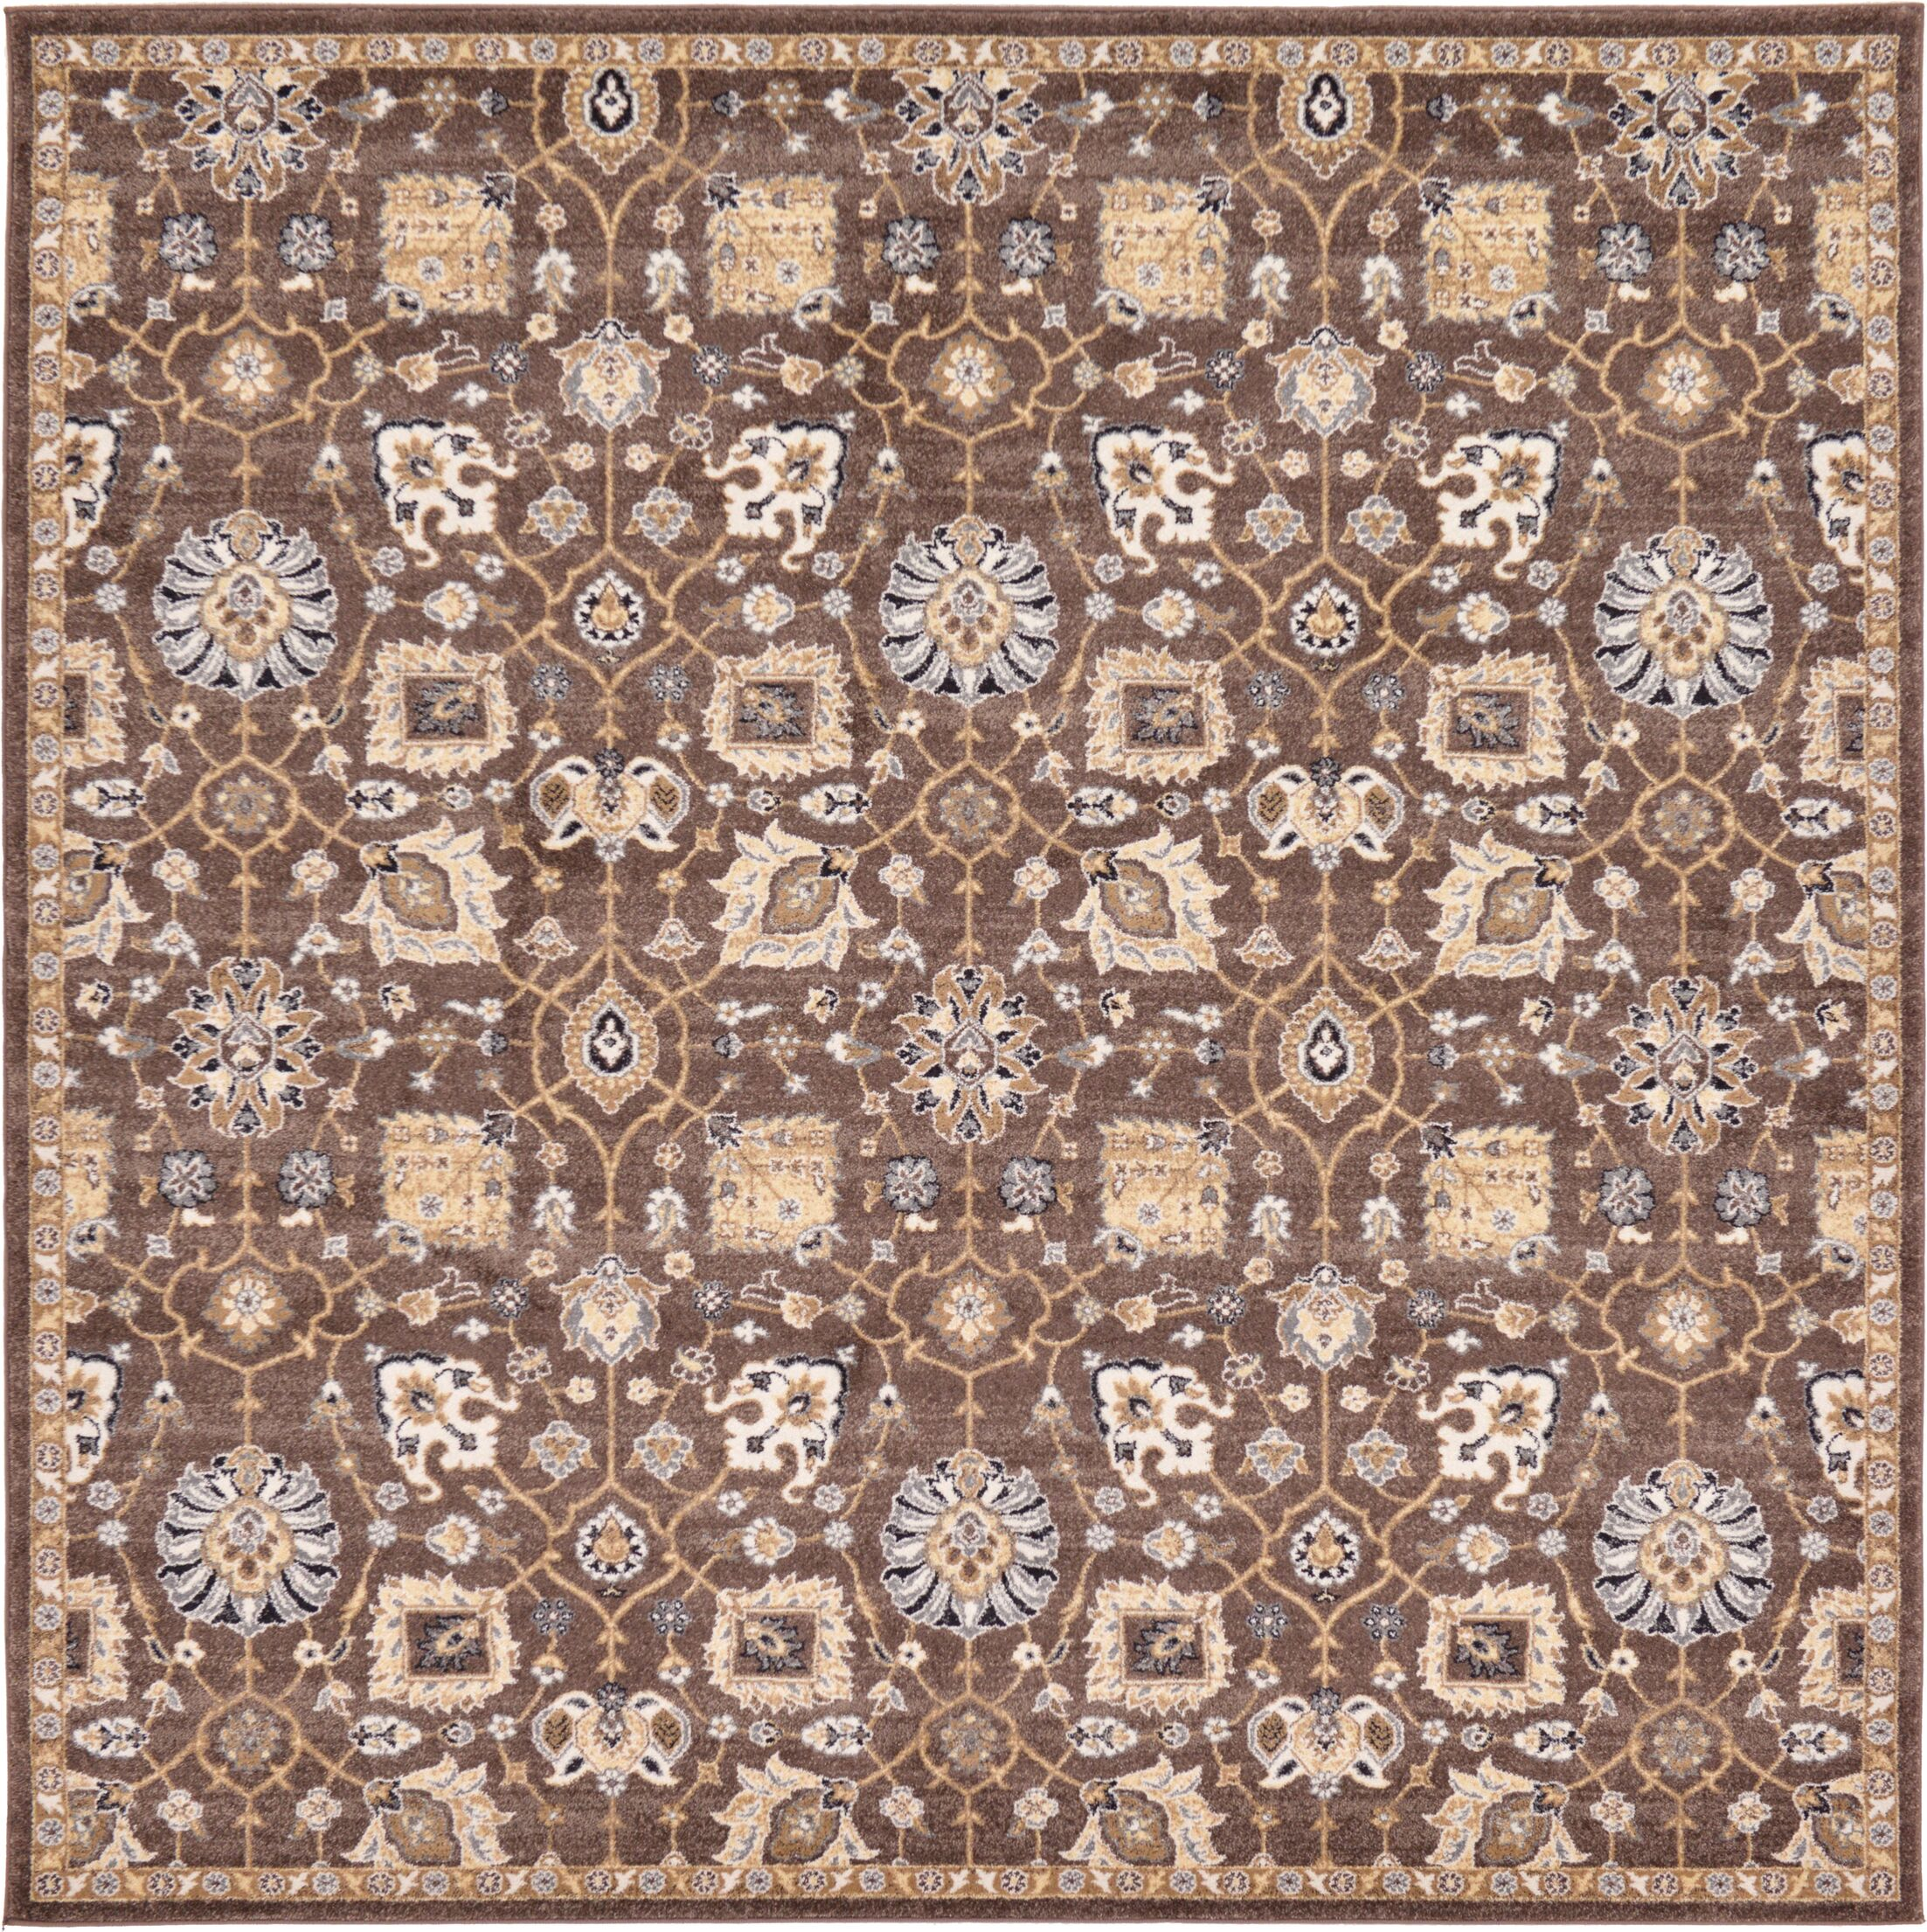 Peter Tradition Brown Area Rug Rug Size: Square 8'4